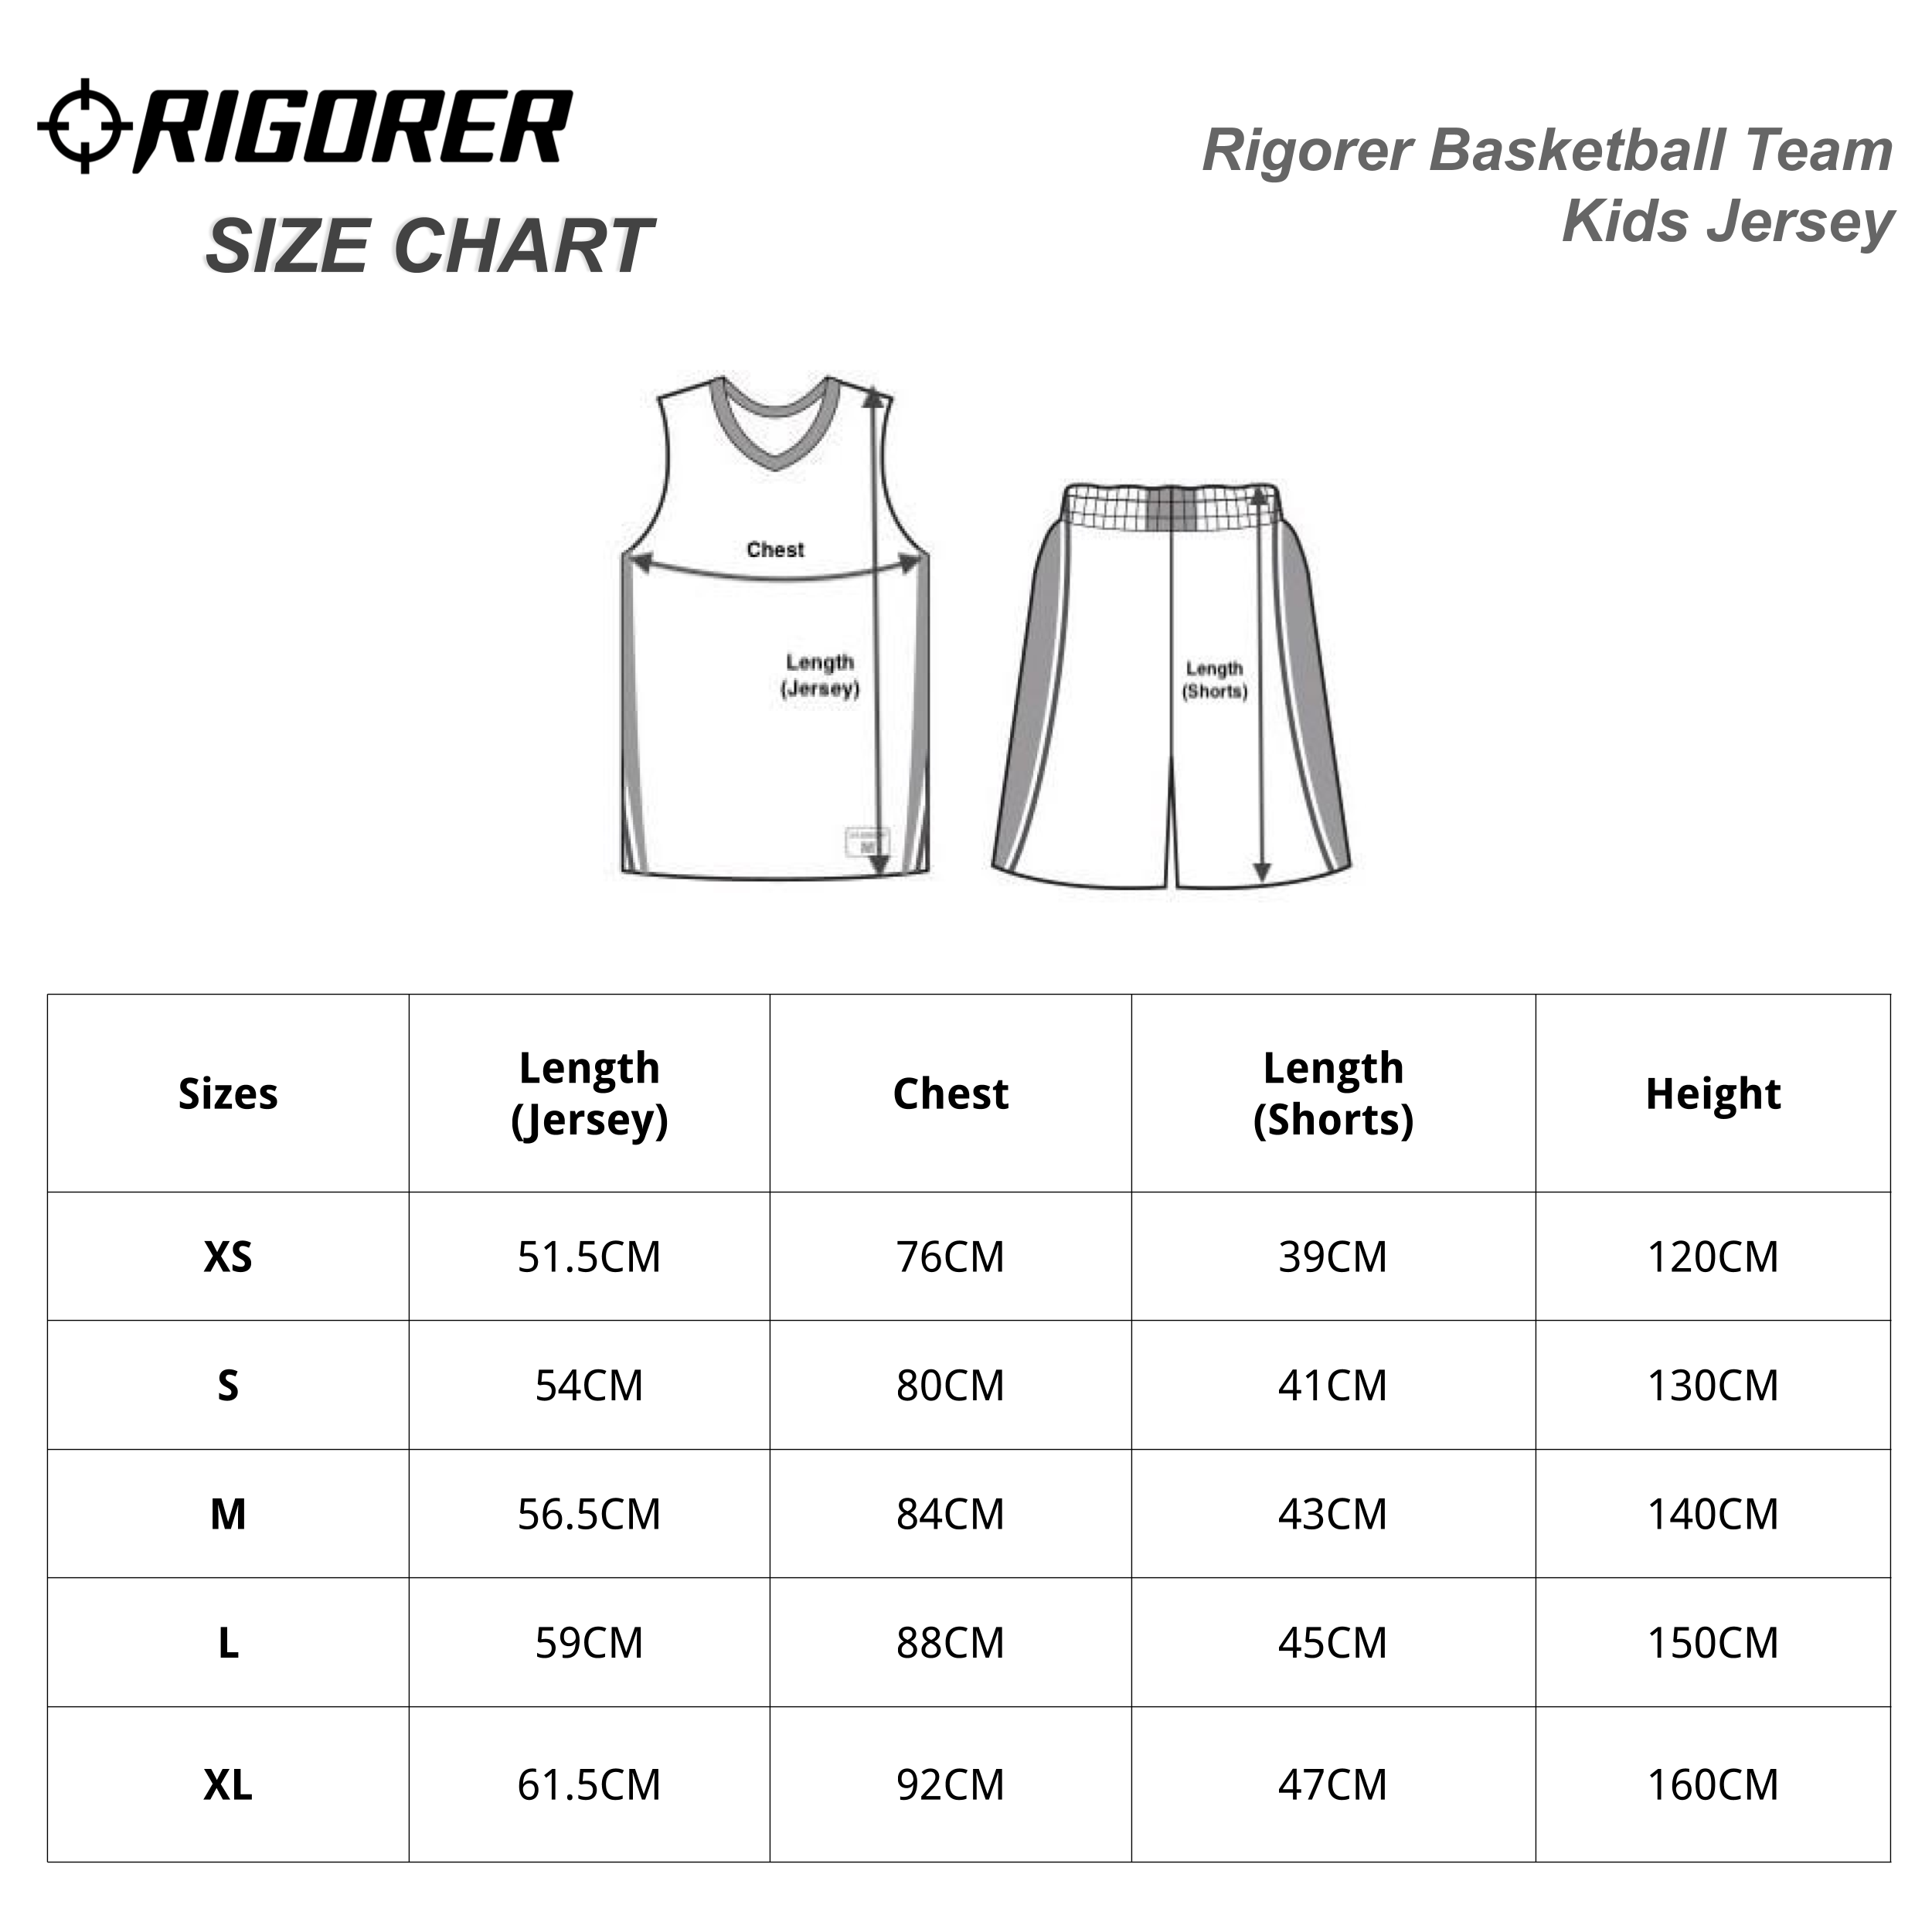 Rigorer Basketball Team Kids Jersey Sizing Chart